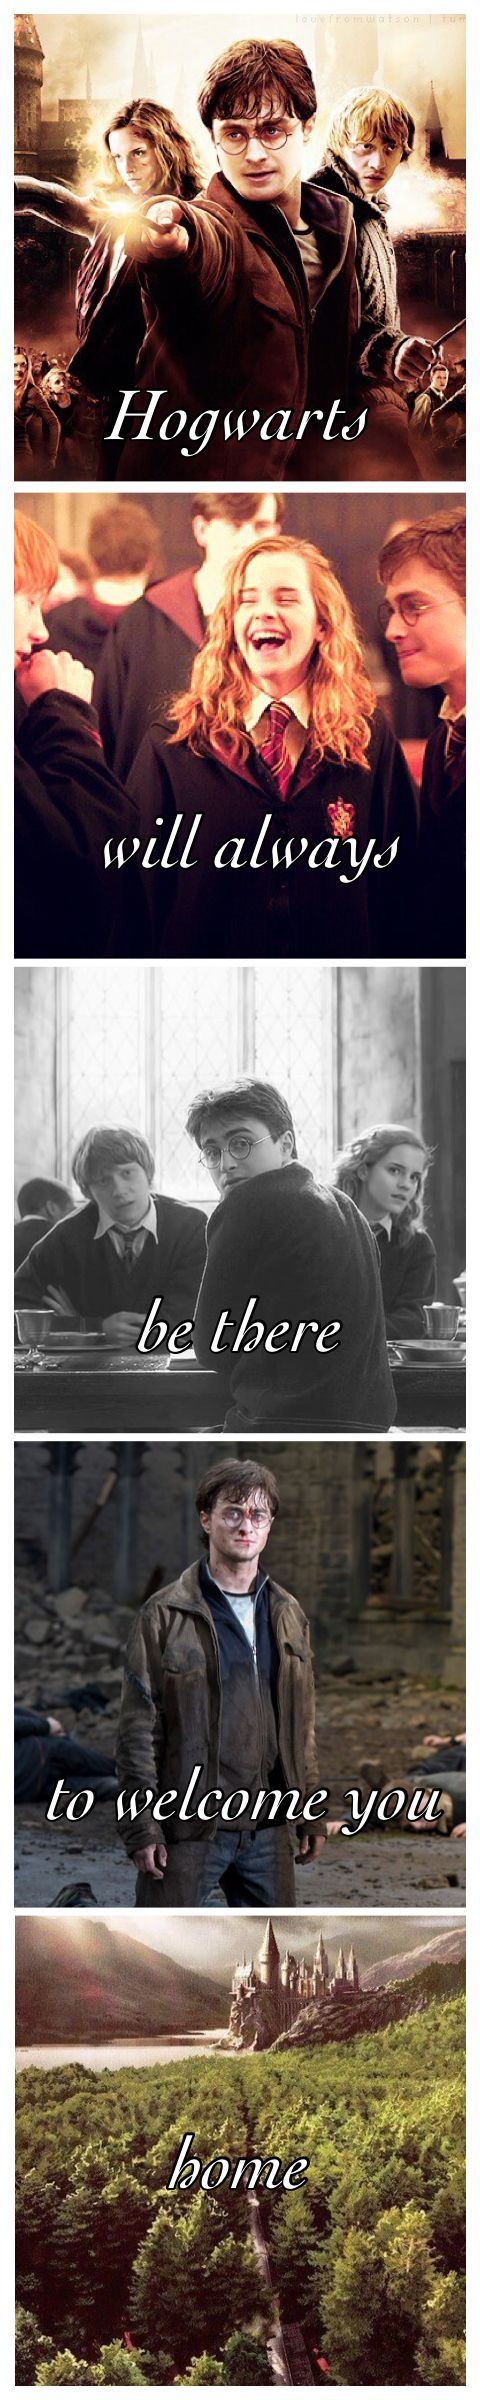 Pin by Charl on HARRY POTTER | Harry potter memes, Harry